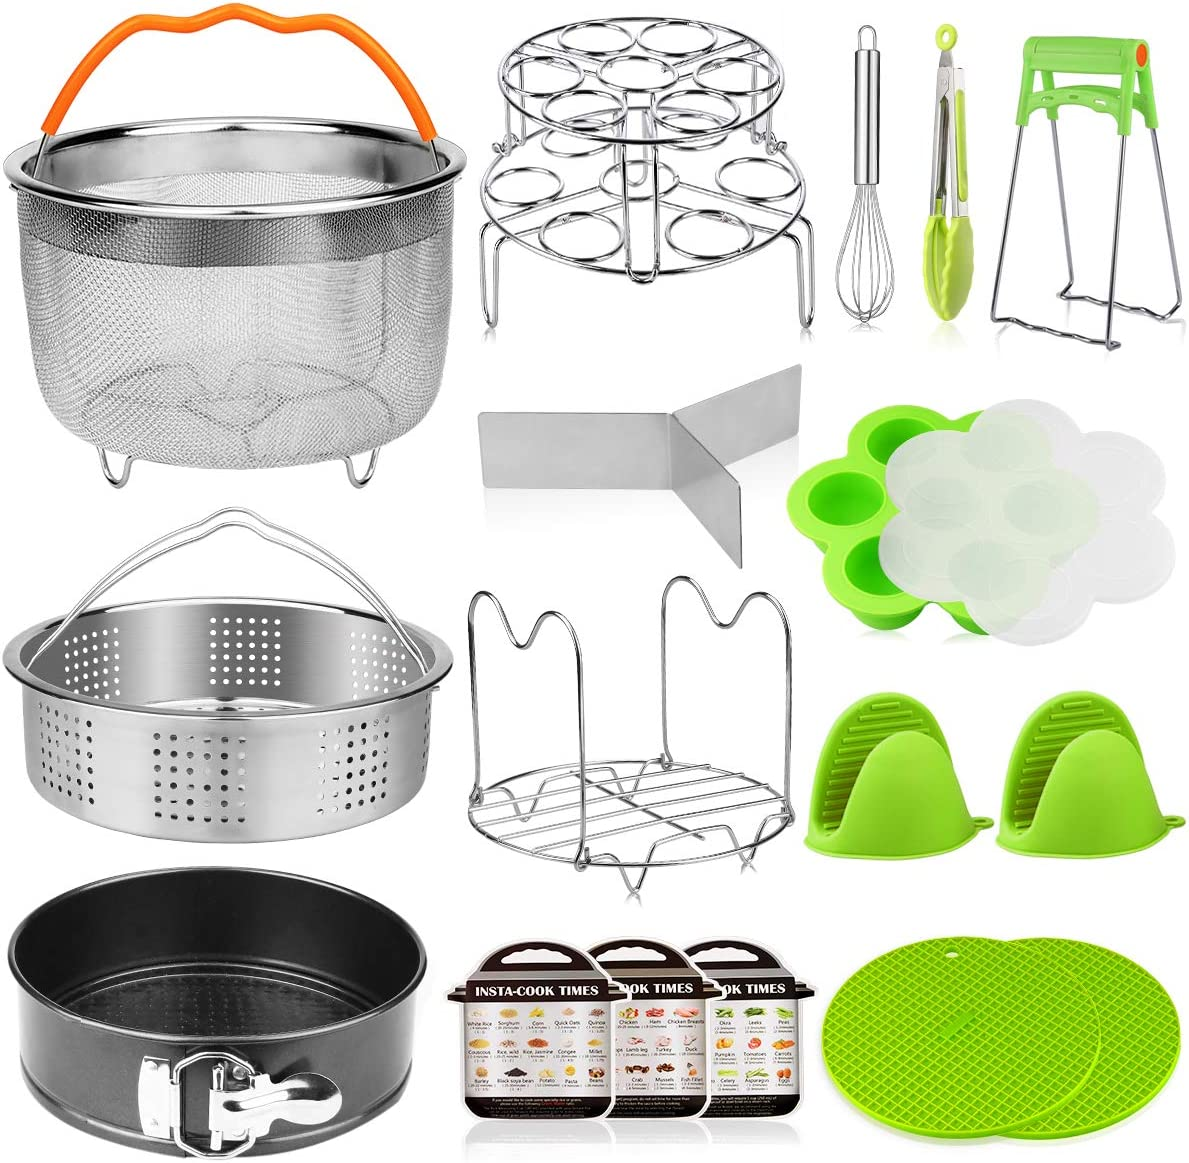 Fashion Aiduy 18 pieces Pressure Cooker Accessories with Compatible New mail order Set